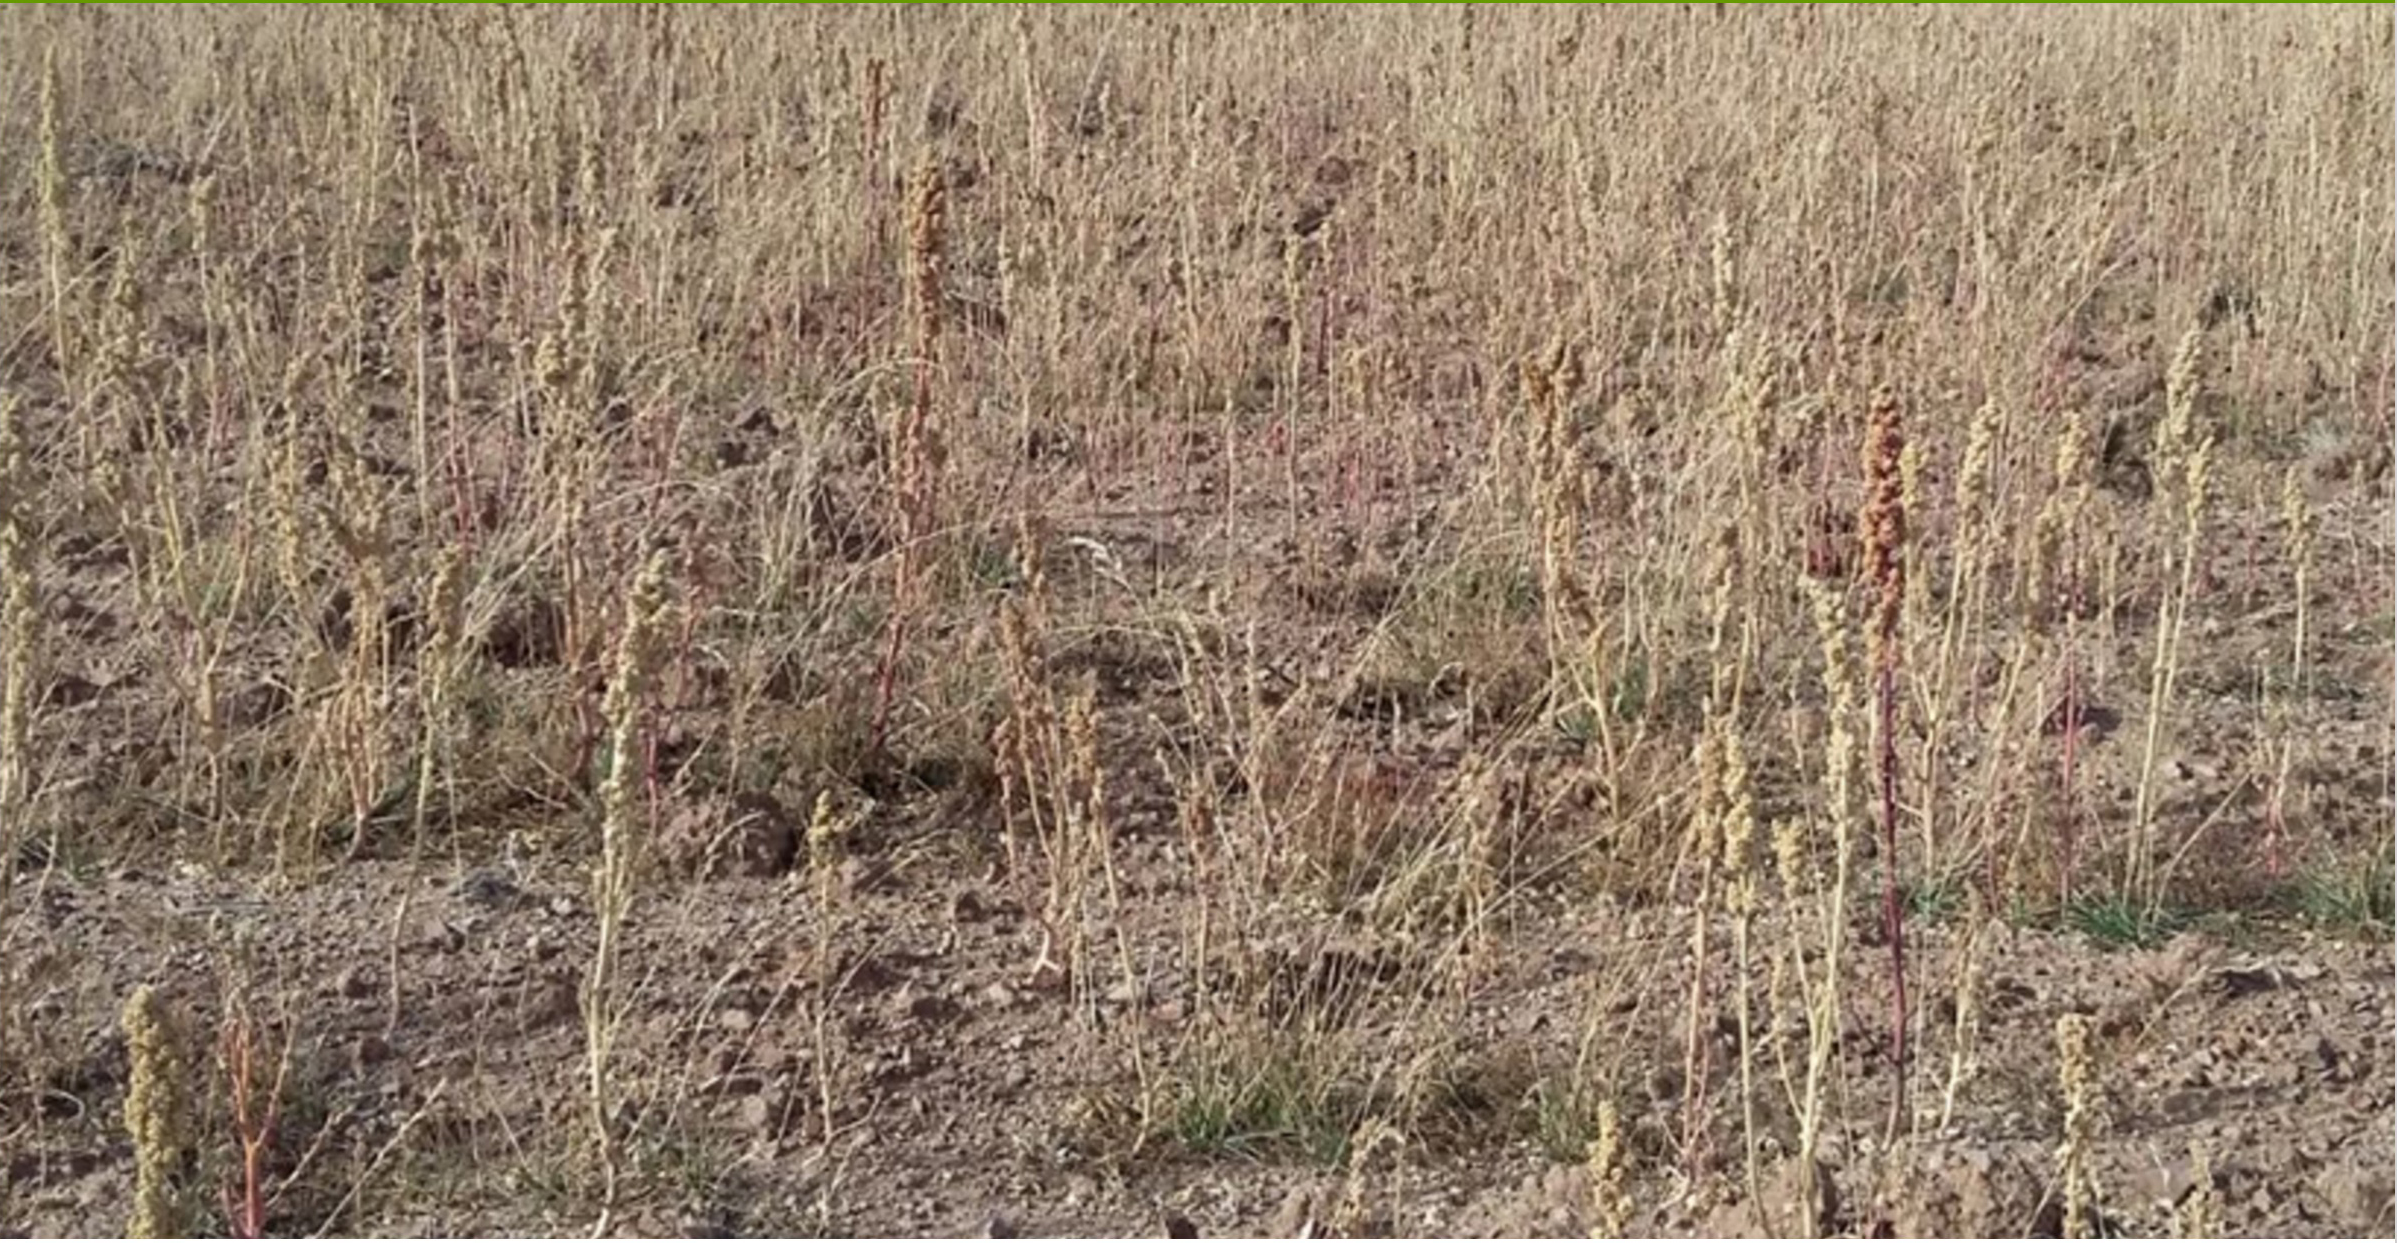 quinoa-crops-affected-by-drought-and-frost-in-oruro-department